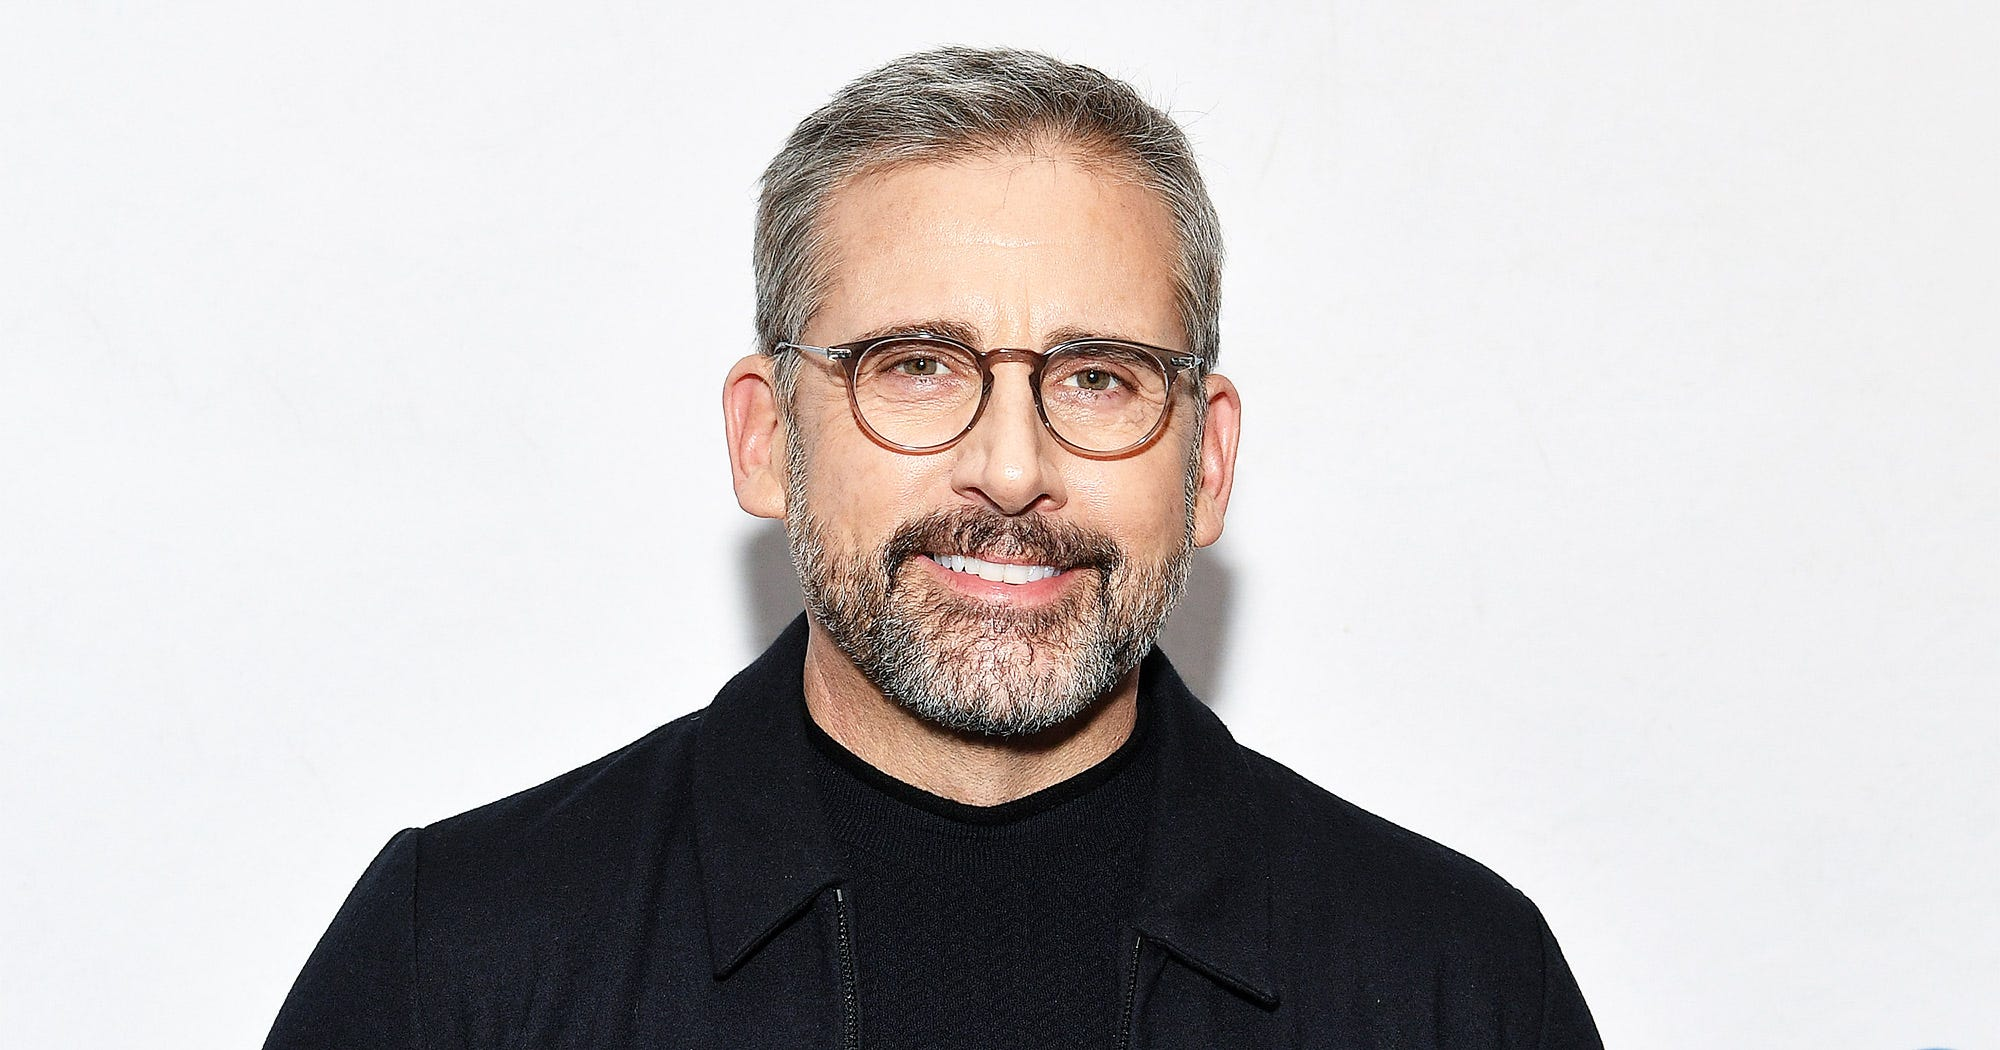 Steve Carrell Reunites With The Office Creator For Trump-Inspired Netflix Series